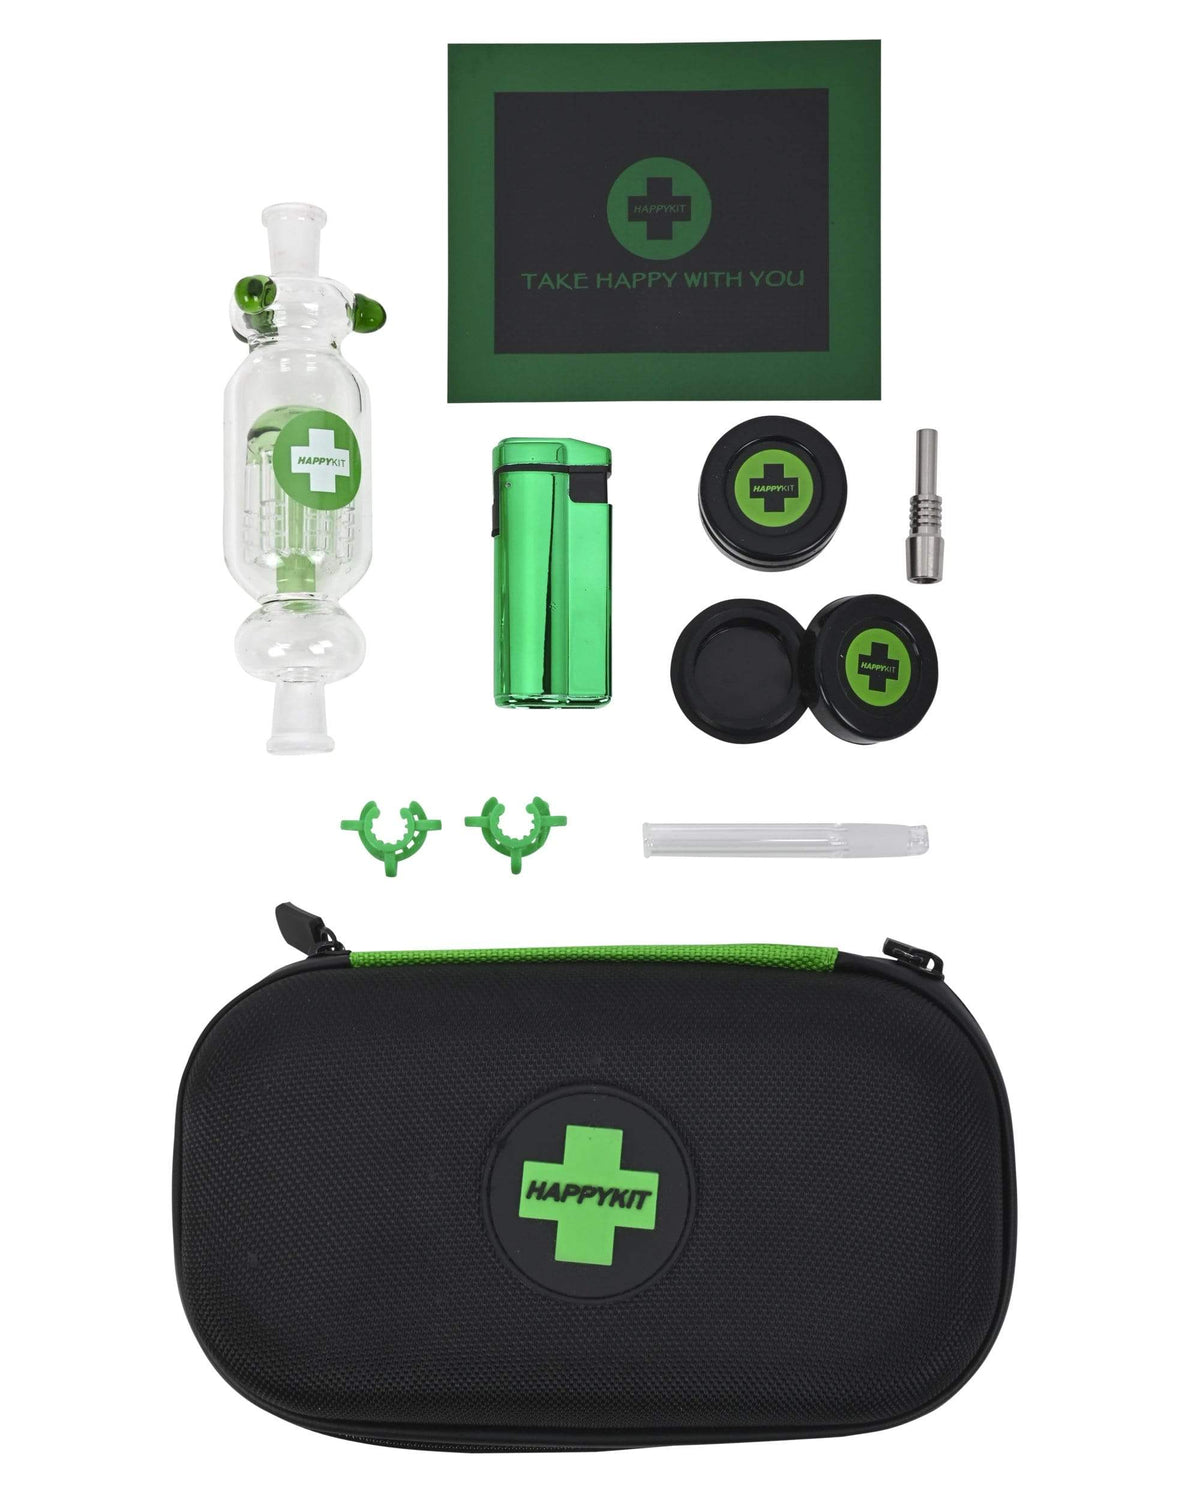 The Very Happy Dab kit